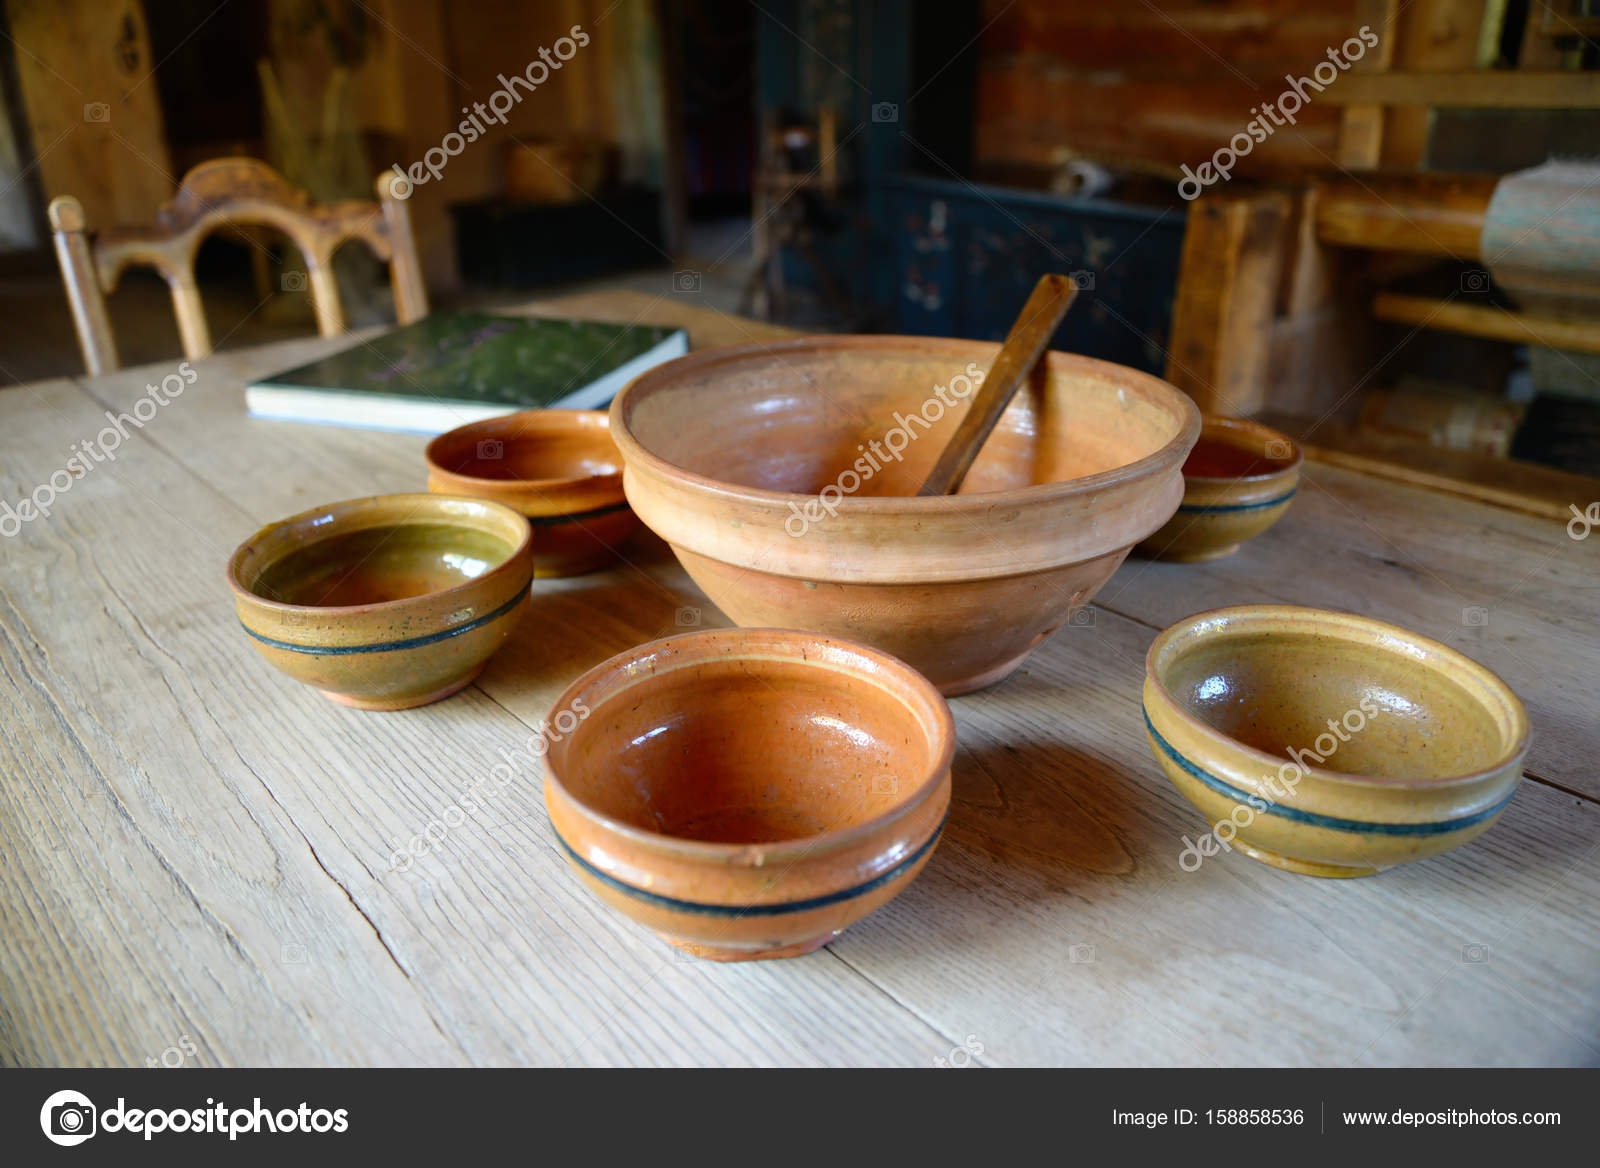 Wooden and clay dinnerware on and old wooden table u2014 Stock Photo & wooden and clay dinnerware on and old wooden table u2014 Stock Photo ...